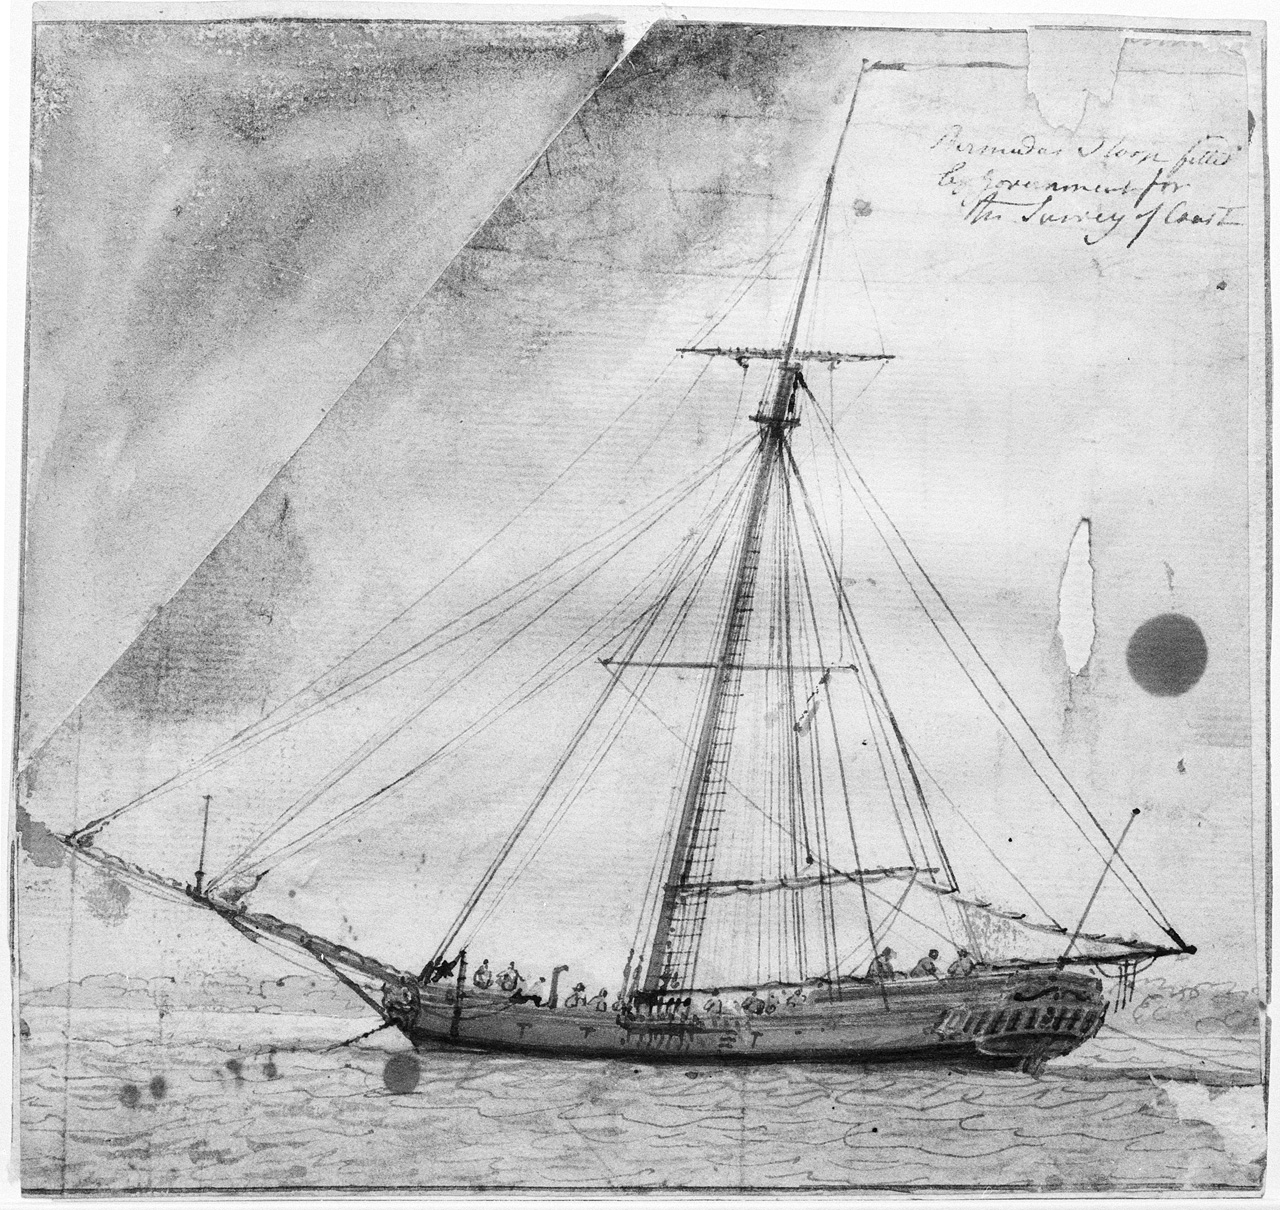 'Bermuda sloop fitted by Government for the survey of coast'